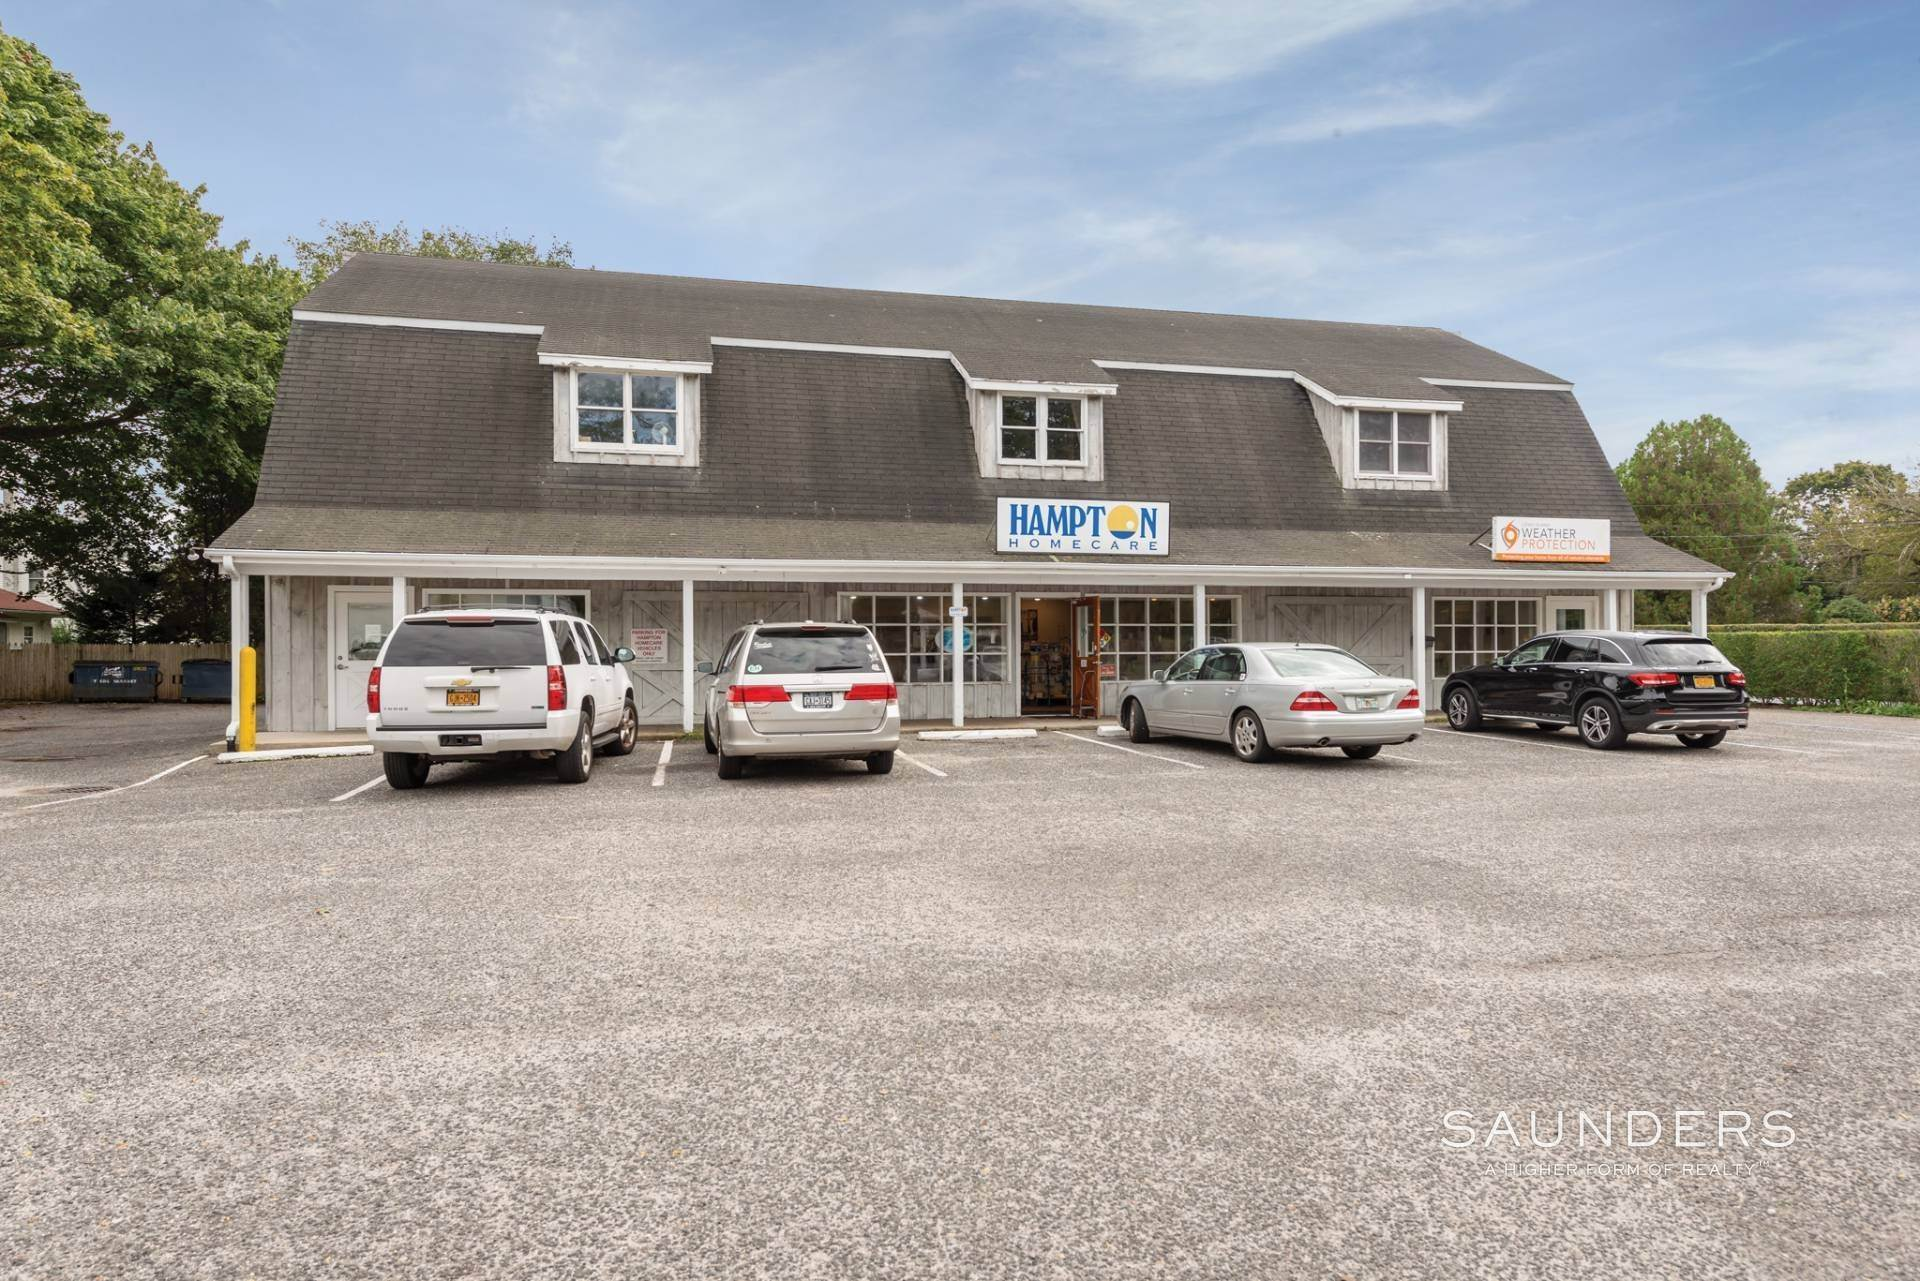 Commercial for Sale at Southampton Commercial Investment Opportunity 260 Hampton Road, Southampton, Southampton Town, NY 11968